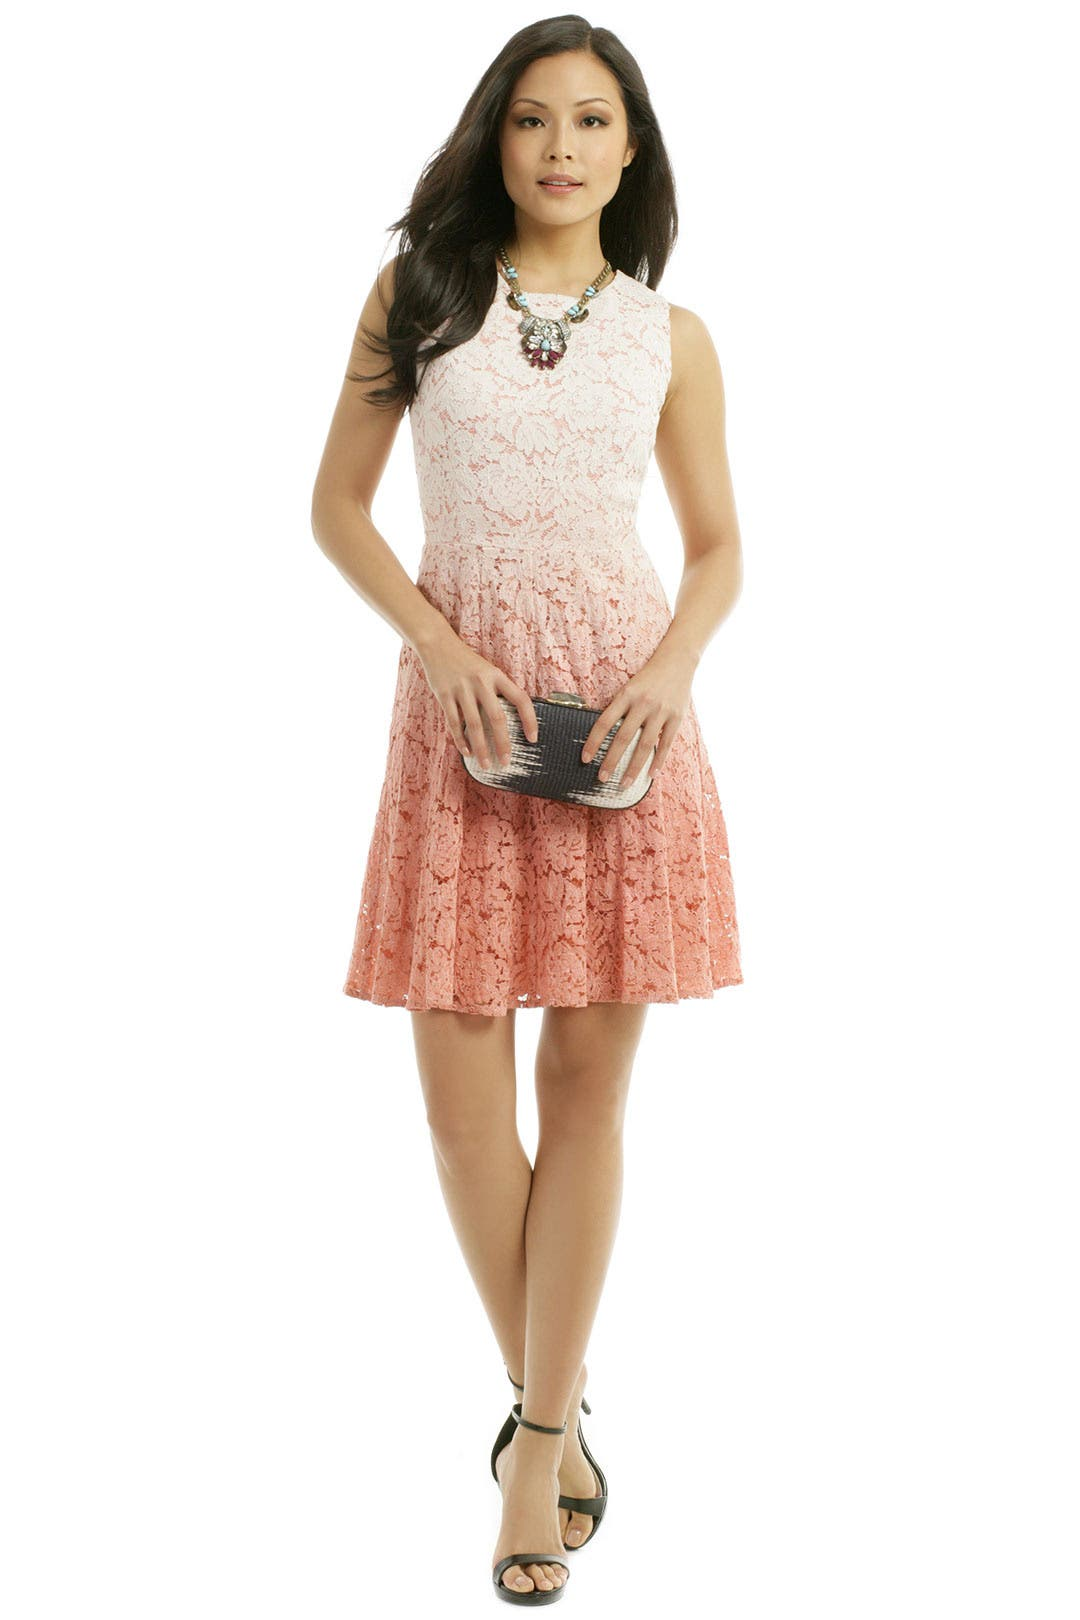 Peach Dip Dye Dress by Trina Turk for $30 - $55 | Rent the Runway